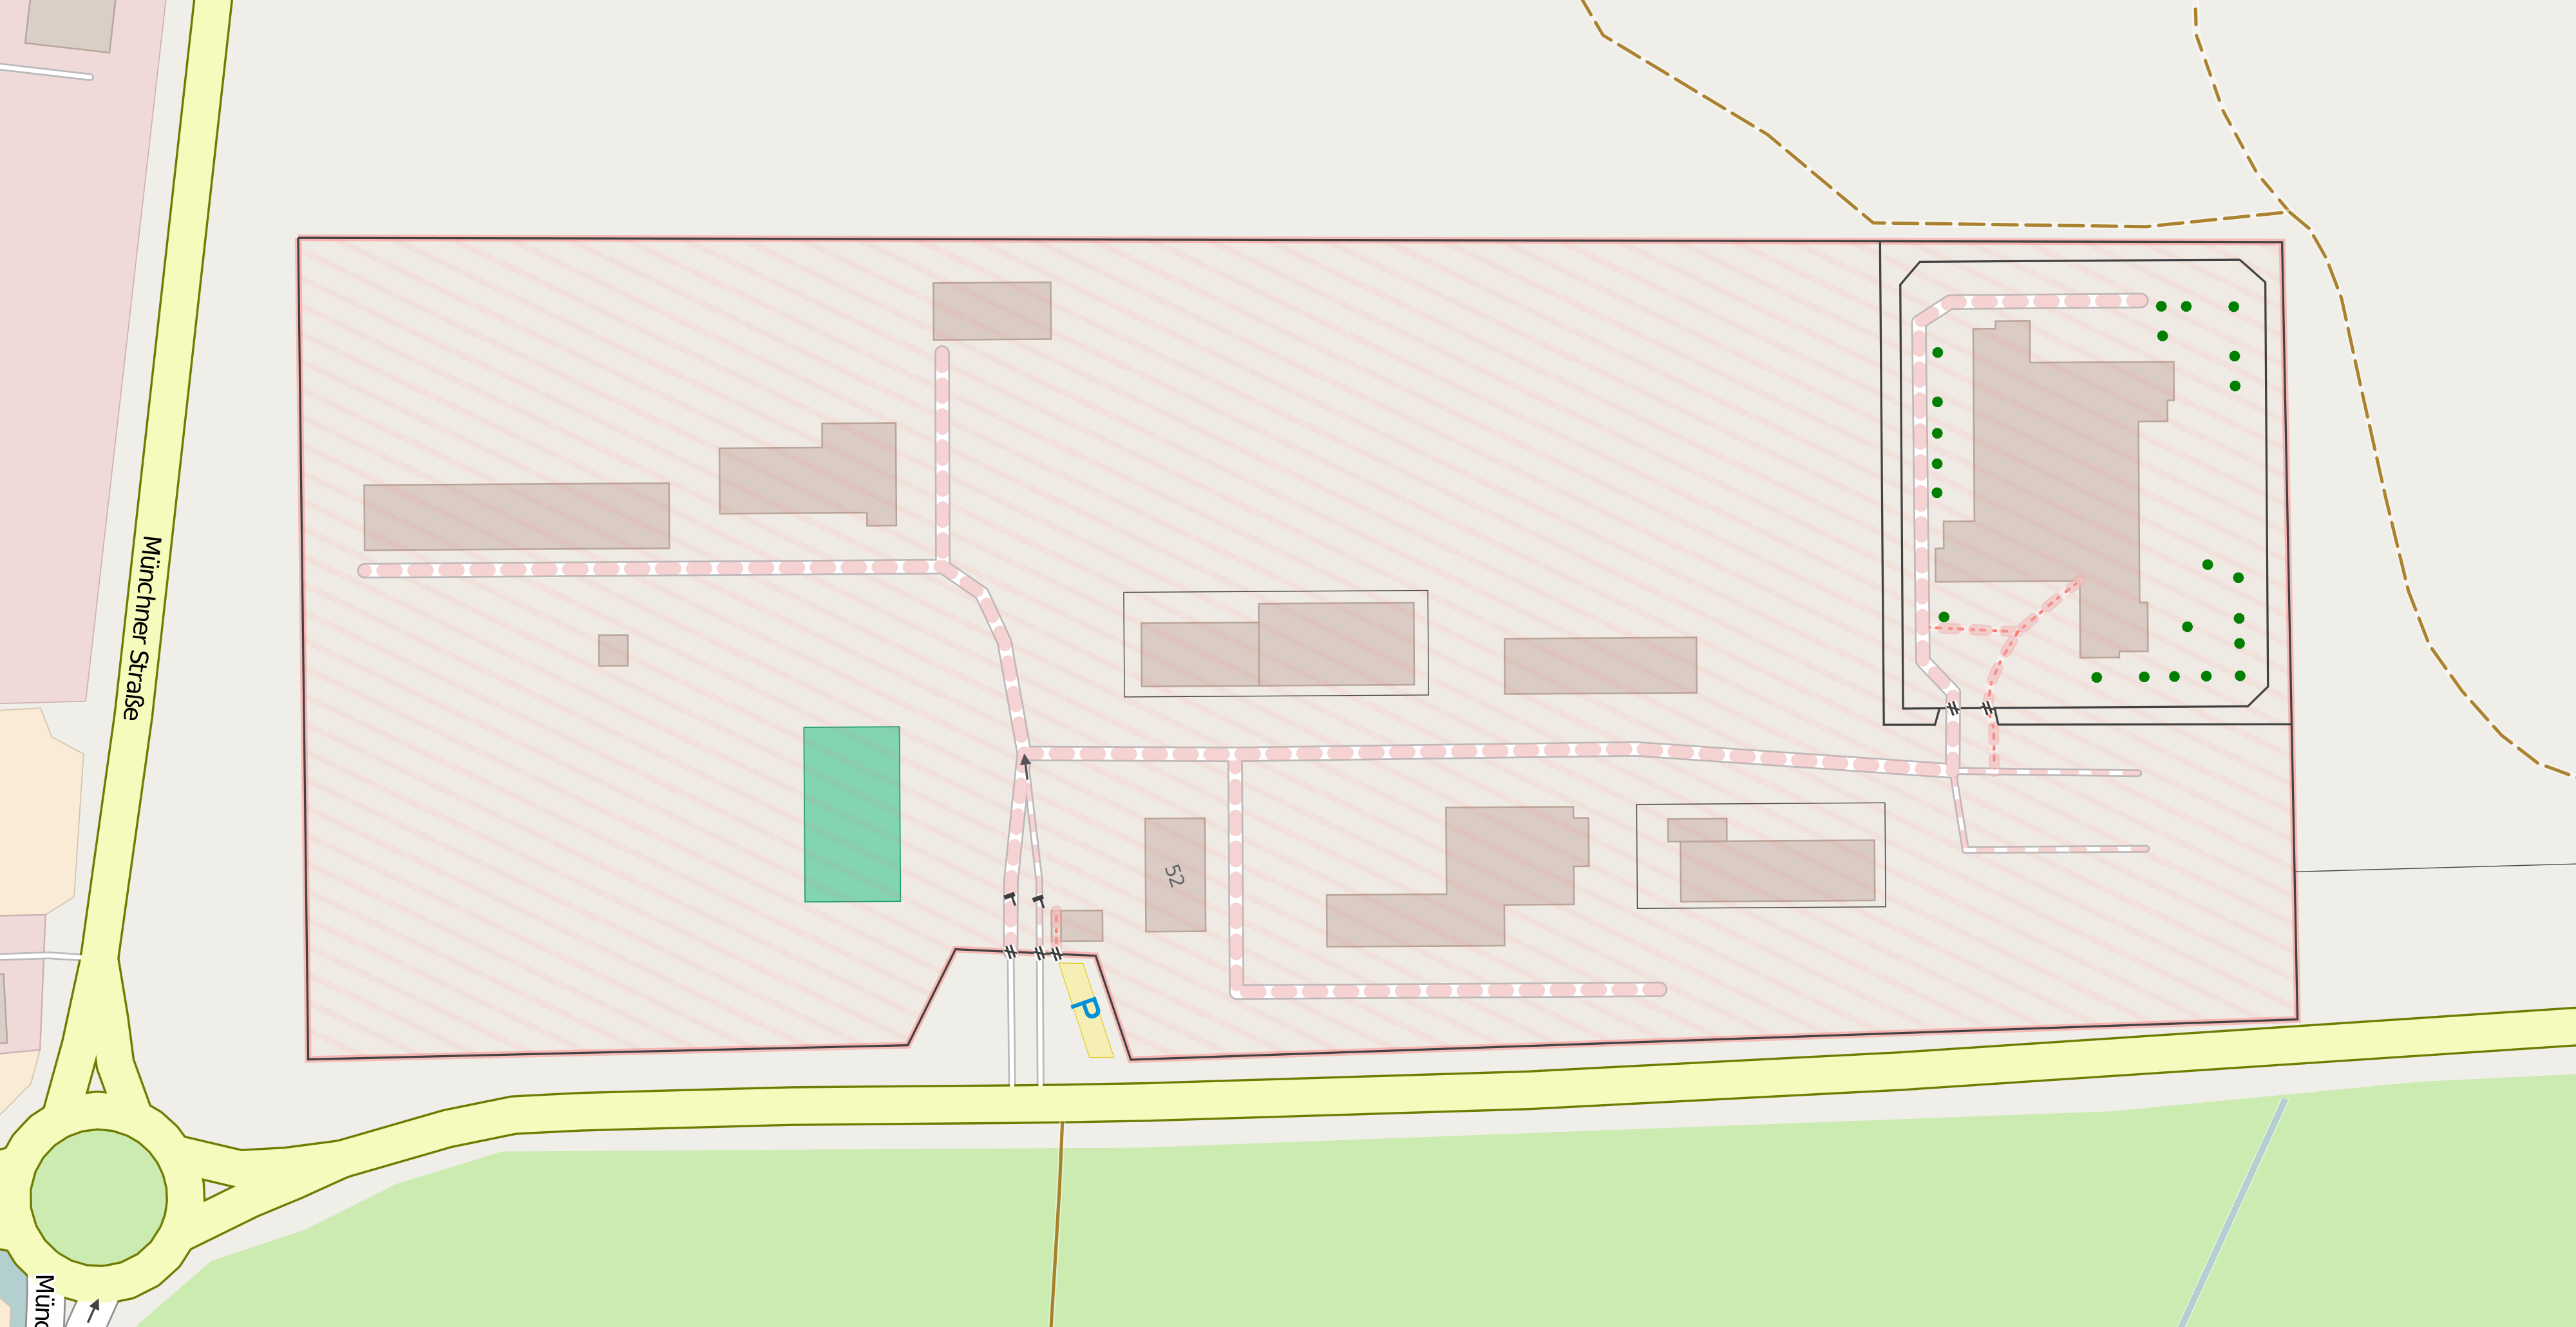 Map of the Mangfall Barracks at the BND Station Bad Aibling. Picture: OpenStreetMap contributors. License: Creative Commons BY-SA 2.0.